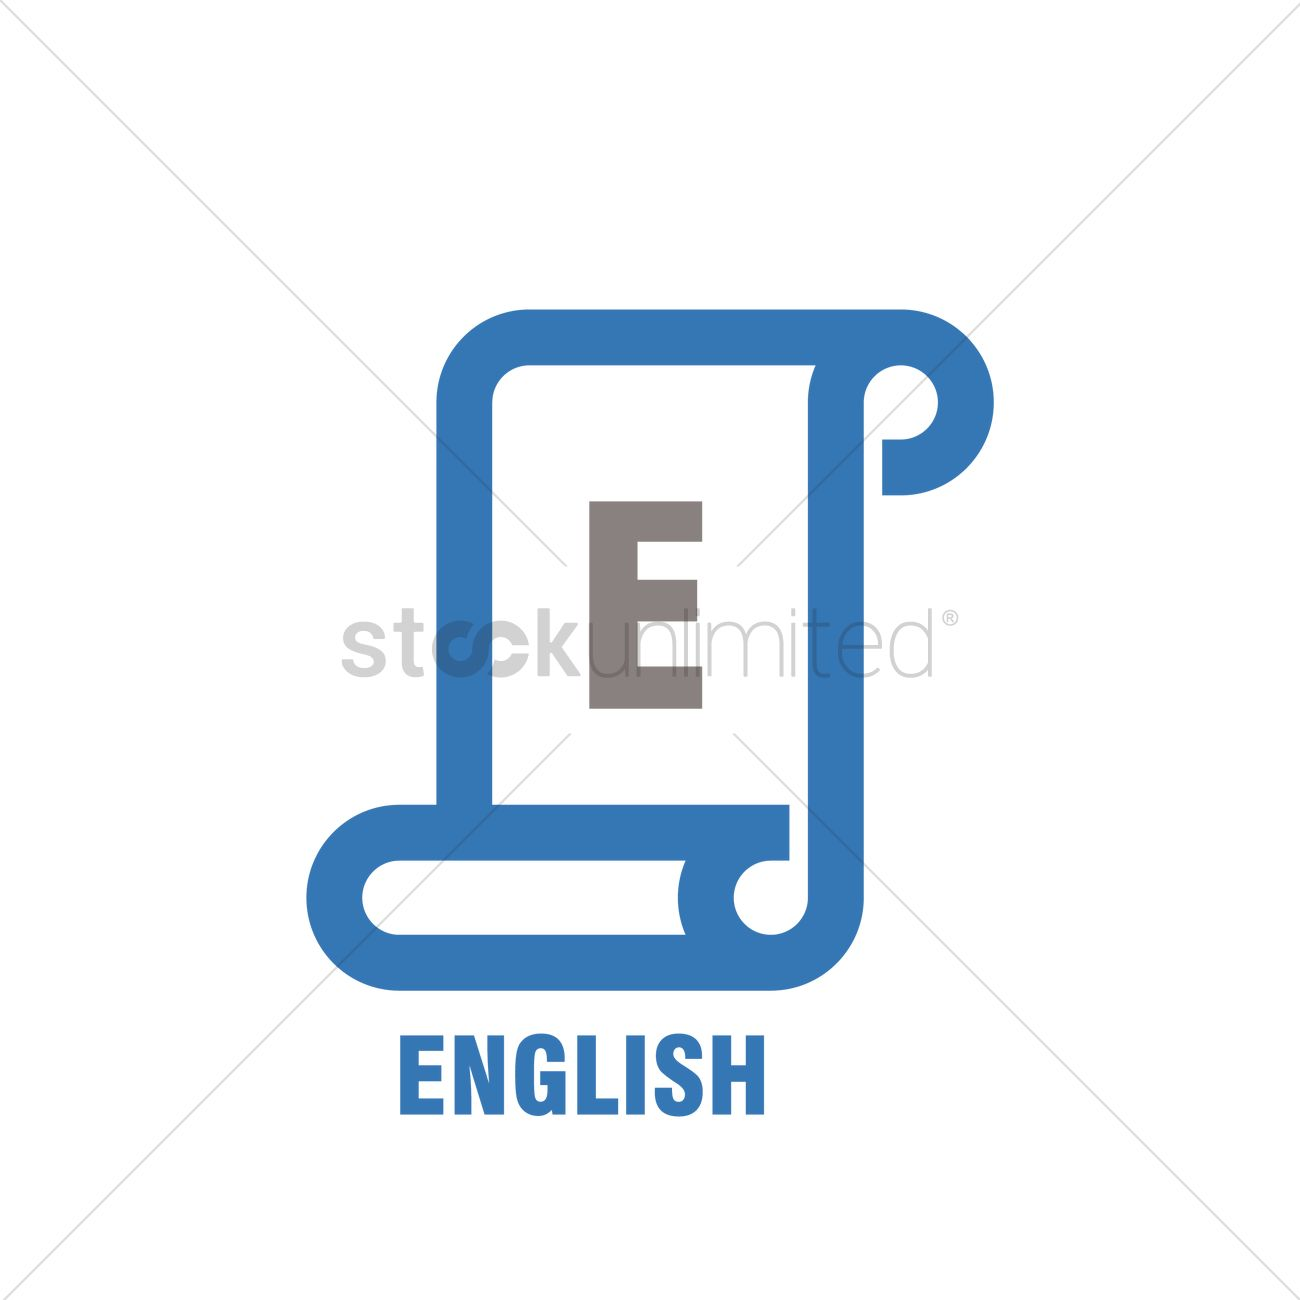 Subject Clip Art Clause Learning English Language, PNG